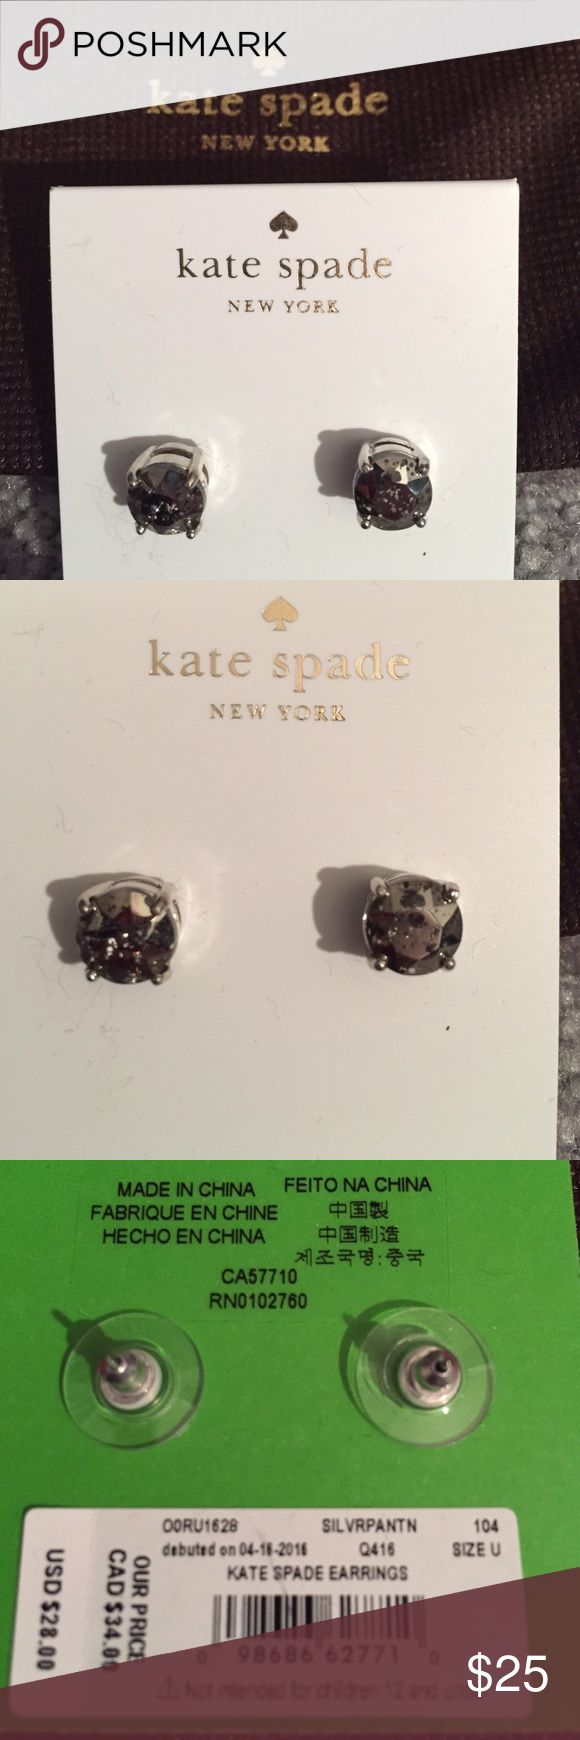 KATE SPADE STUD EARRINGS NWT SLV/PLAT. KATE SPADE STUD EARRINGS NWT SLV/PLAT. ✅ALWAYS OPEN TO OFFERS-unless marked firm on price ✅OFFERS SHOULD BE MADE THROUGH POSH OFFER FEATURE ✅PRICES NOT DISCUSSED IN COMMENTS  ✅FEEL FREE TO ASK ANY QUESTIONS  ✅Photos from the Internet could vary slightly from the item that is being shipped  ❎NO TRADES kate spade Jewelry Earrings